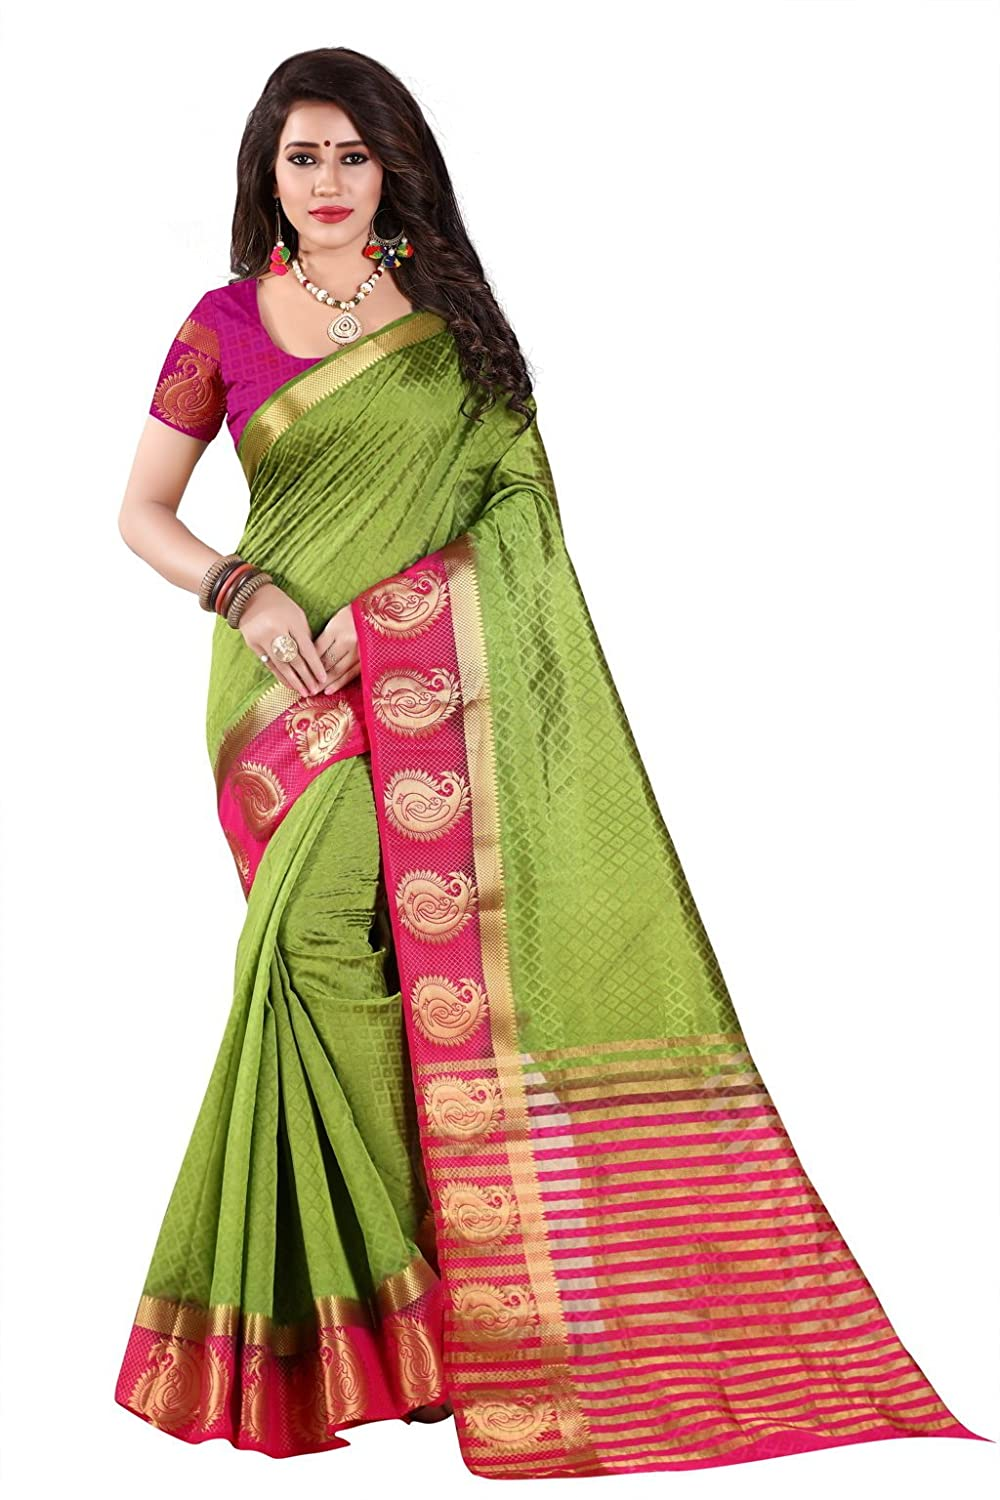 Nirja Creation Kanchipuram Silk with Blouse Piece Saree (NC-MANGO-003_Green_Free Size)